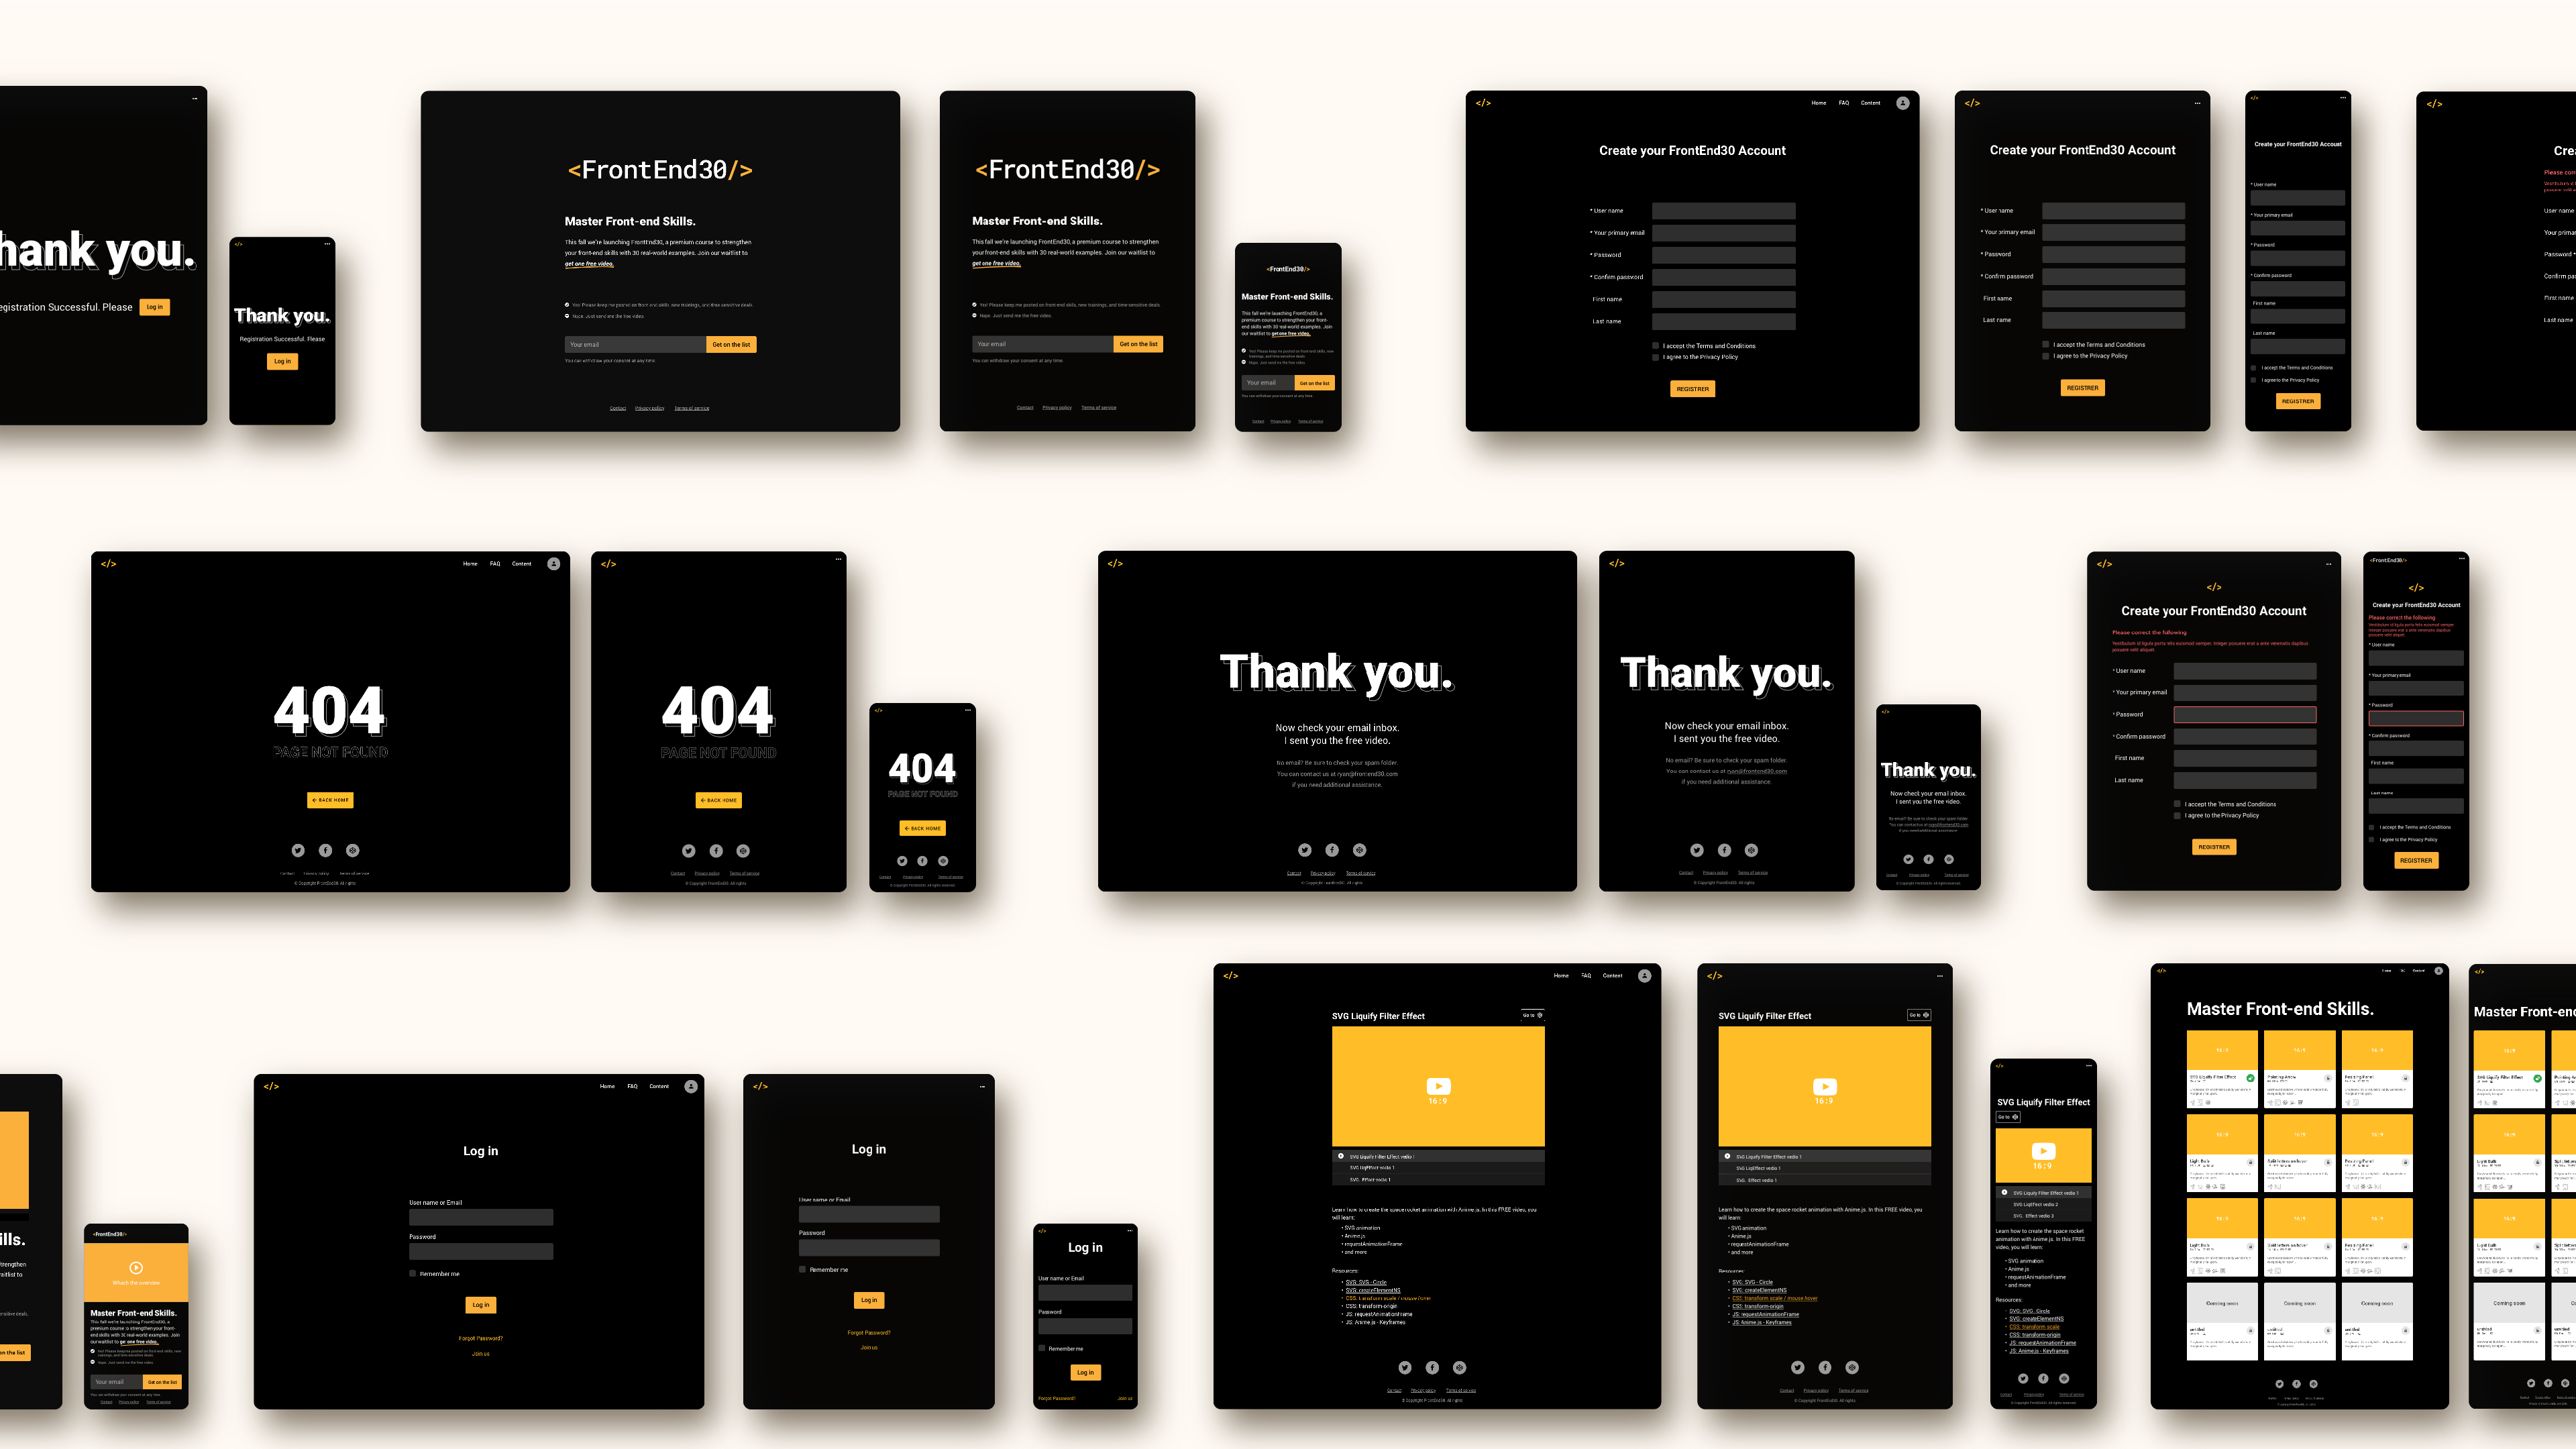 Web design for Front-End30